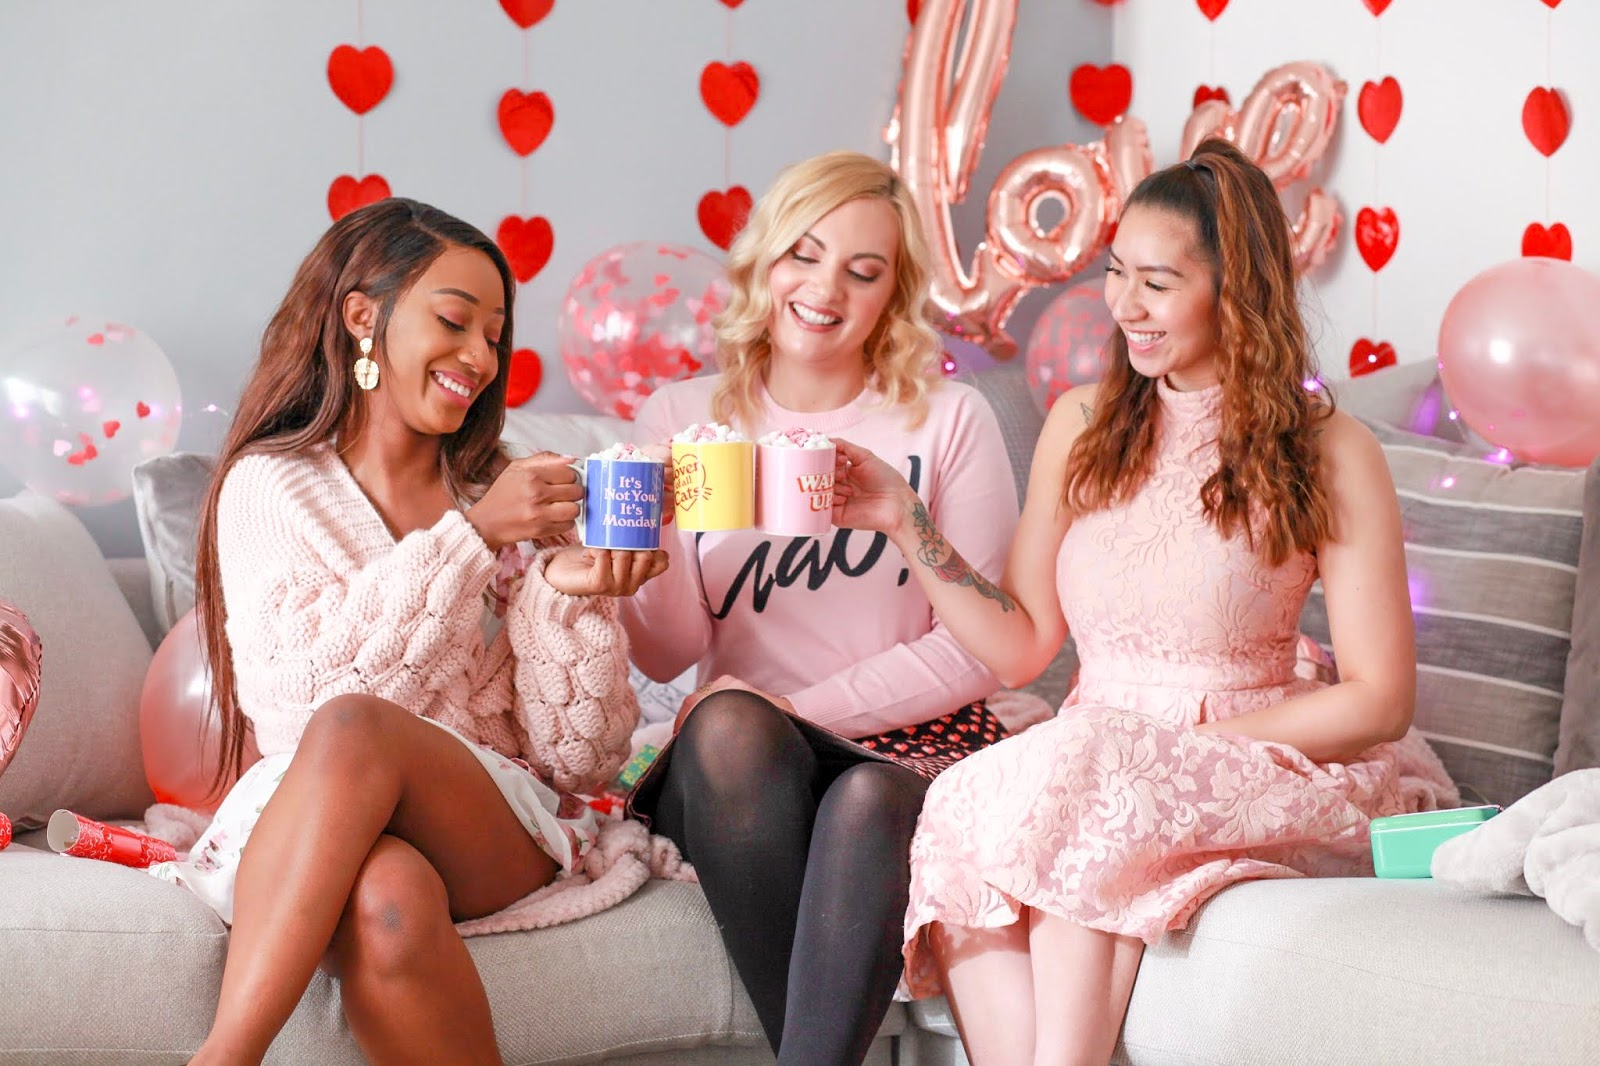 Celebrating Galentine's Day feat. Yes Studio, UK Blogger, Katie Kirk Loves, Galentines Gifts, Gifts for Her, Valentines Gifts, Girls Night, Girlie Day, Girls Night In, Valentines Style, Yes Studio Designs